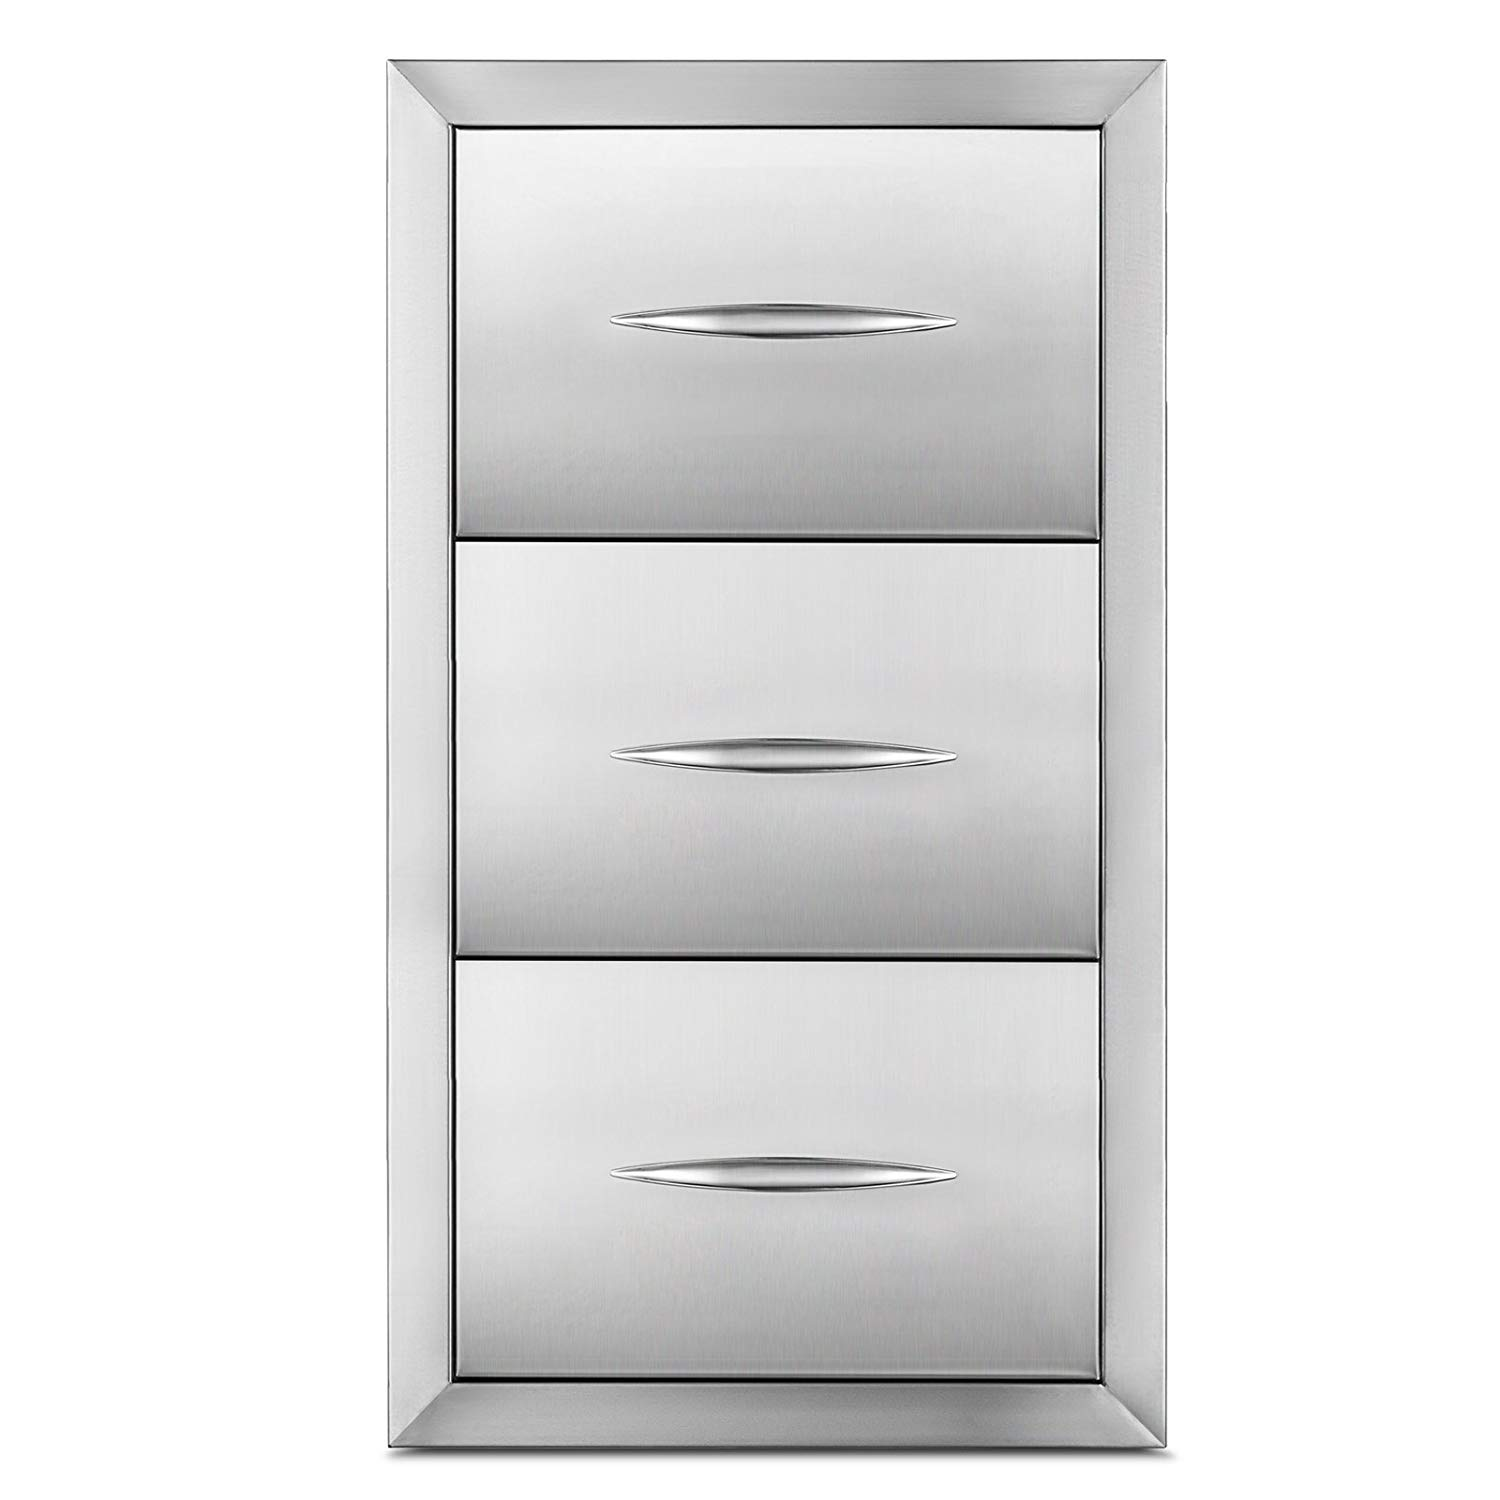 """Happybuy Outdoor kitchen drawer 18""""x15"""" Stainless steel BBQ Island Drawer storage with Chrome Handle Double Access Drawer Flush Mount Sliver Double Access Drawer (Outdoor kitchen Drawer 30""""x17"""")"""